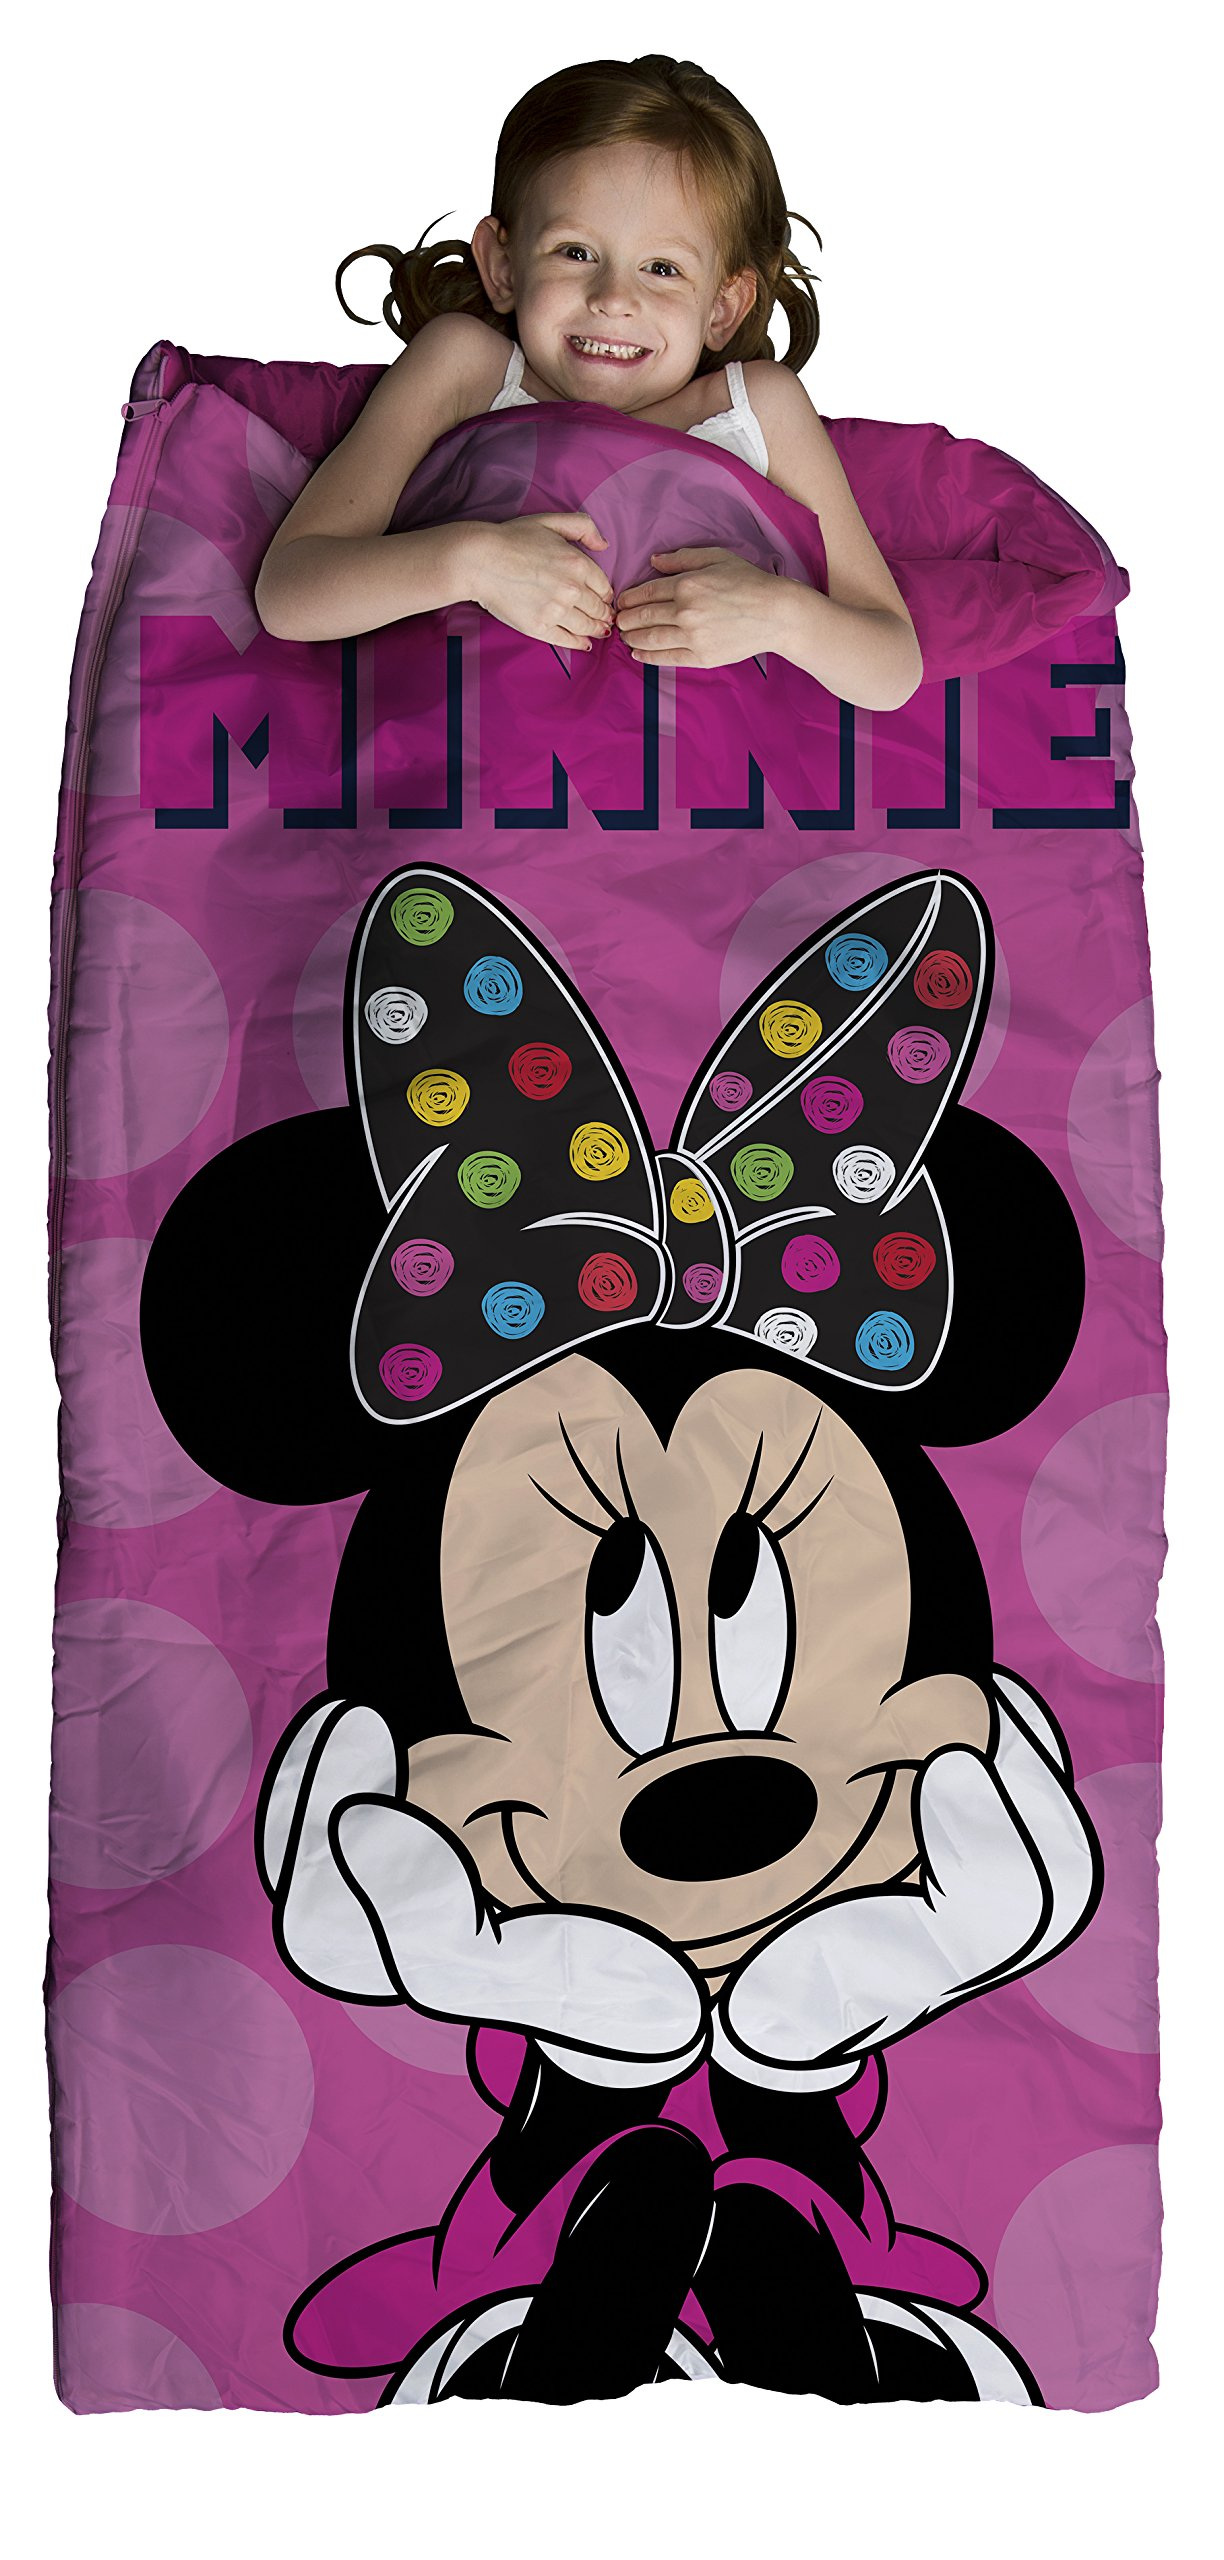 Disney Minnie Mouse Pink 2-Piece Plush Slumber Bag and Backpack Set, 30'' x 54''